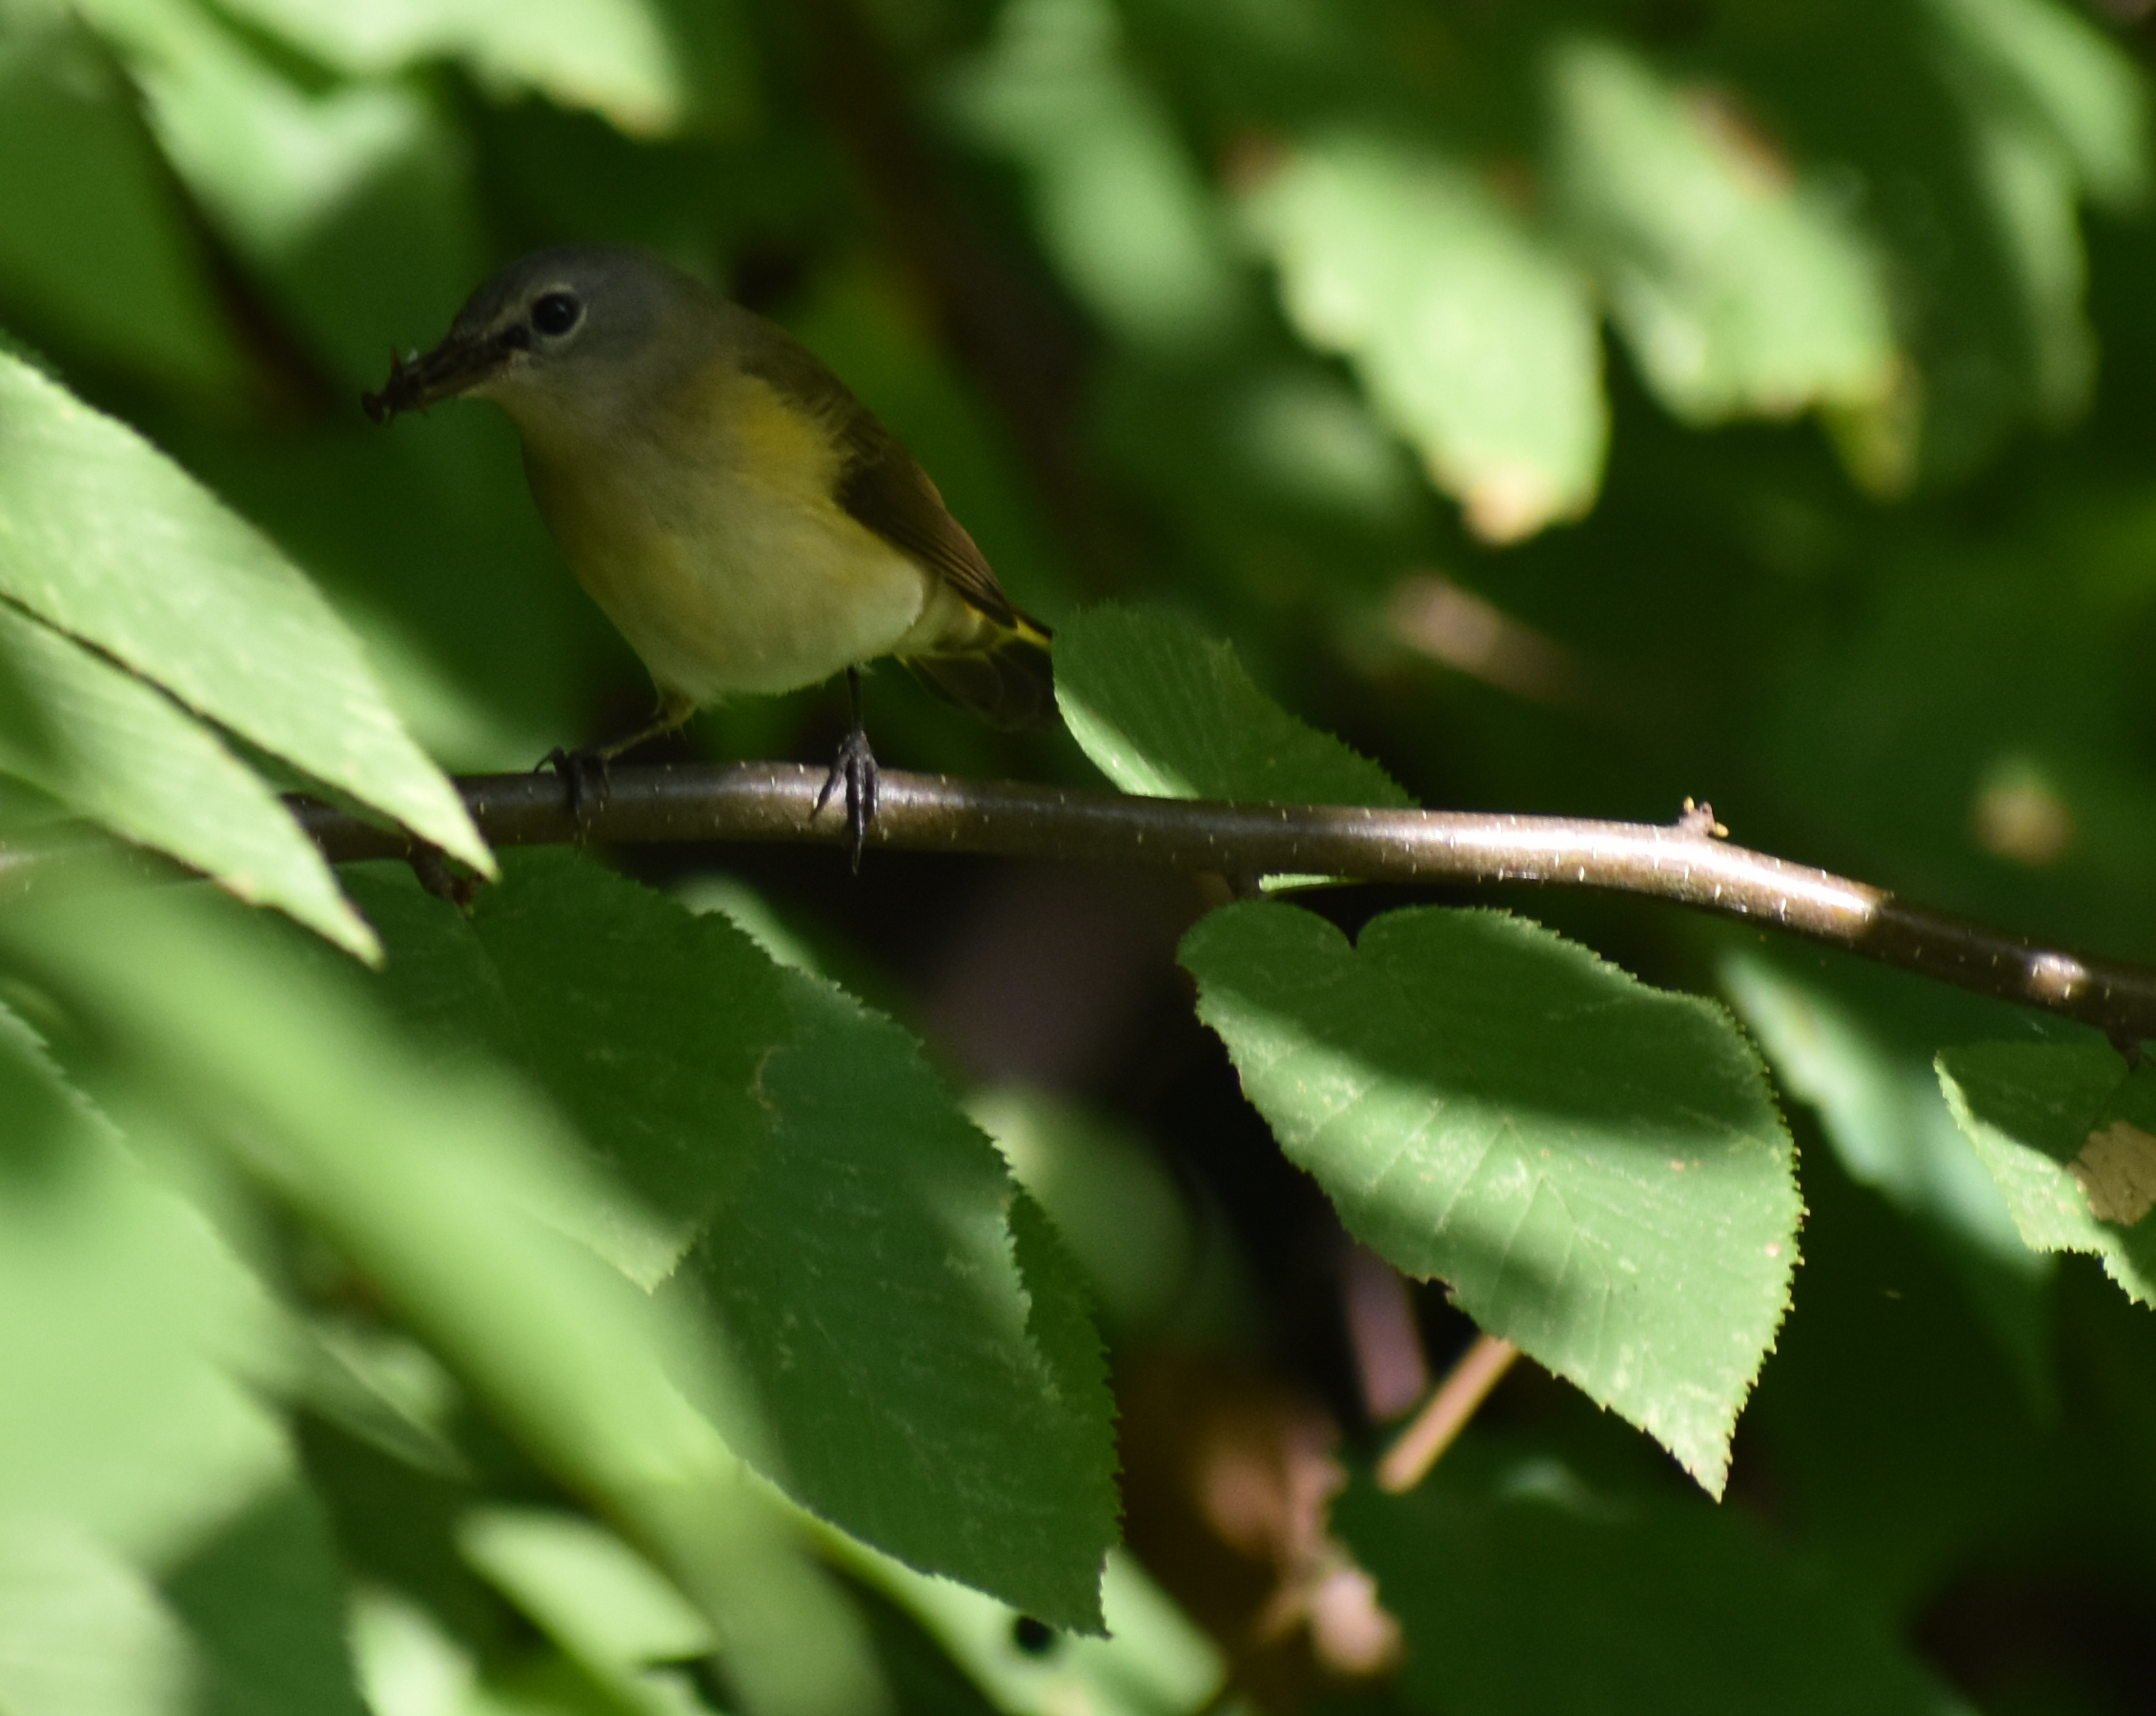 American Redstart eating insect in Birch